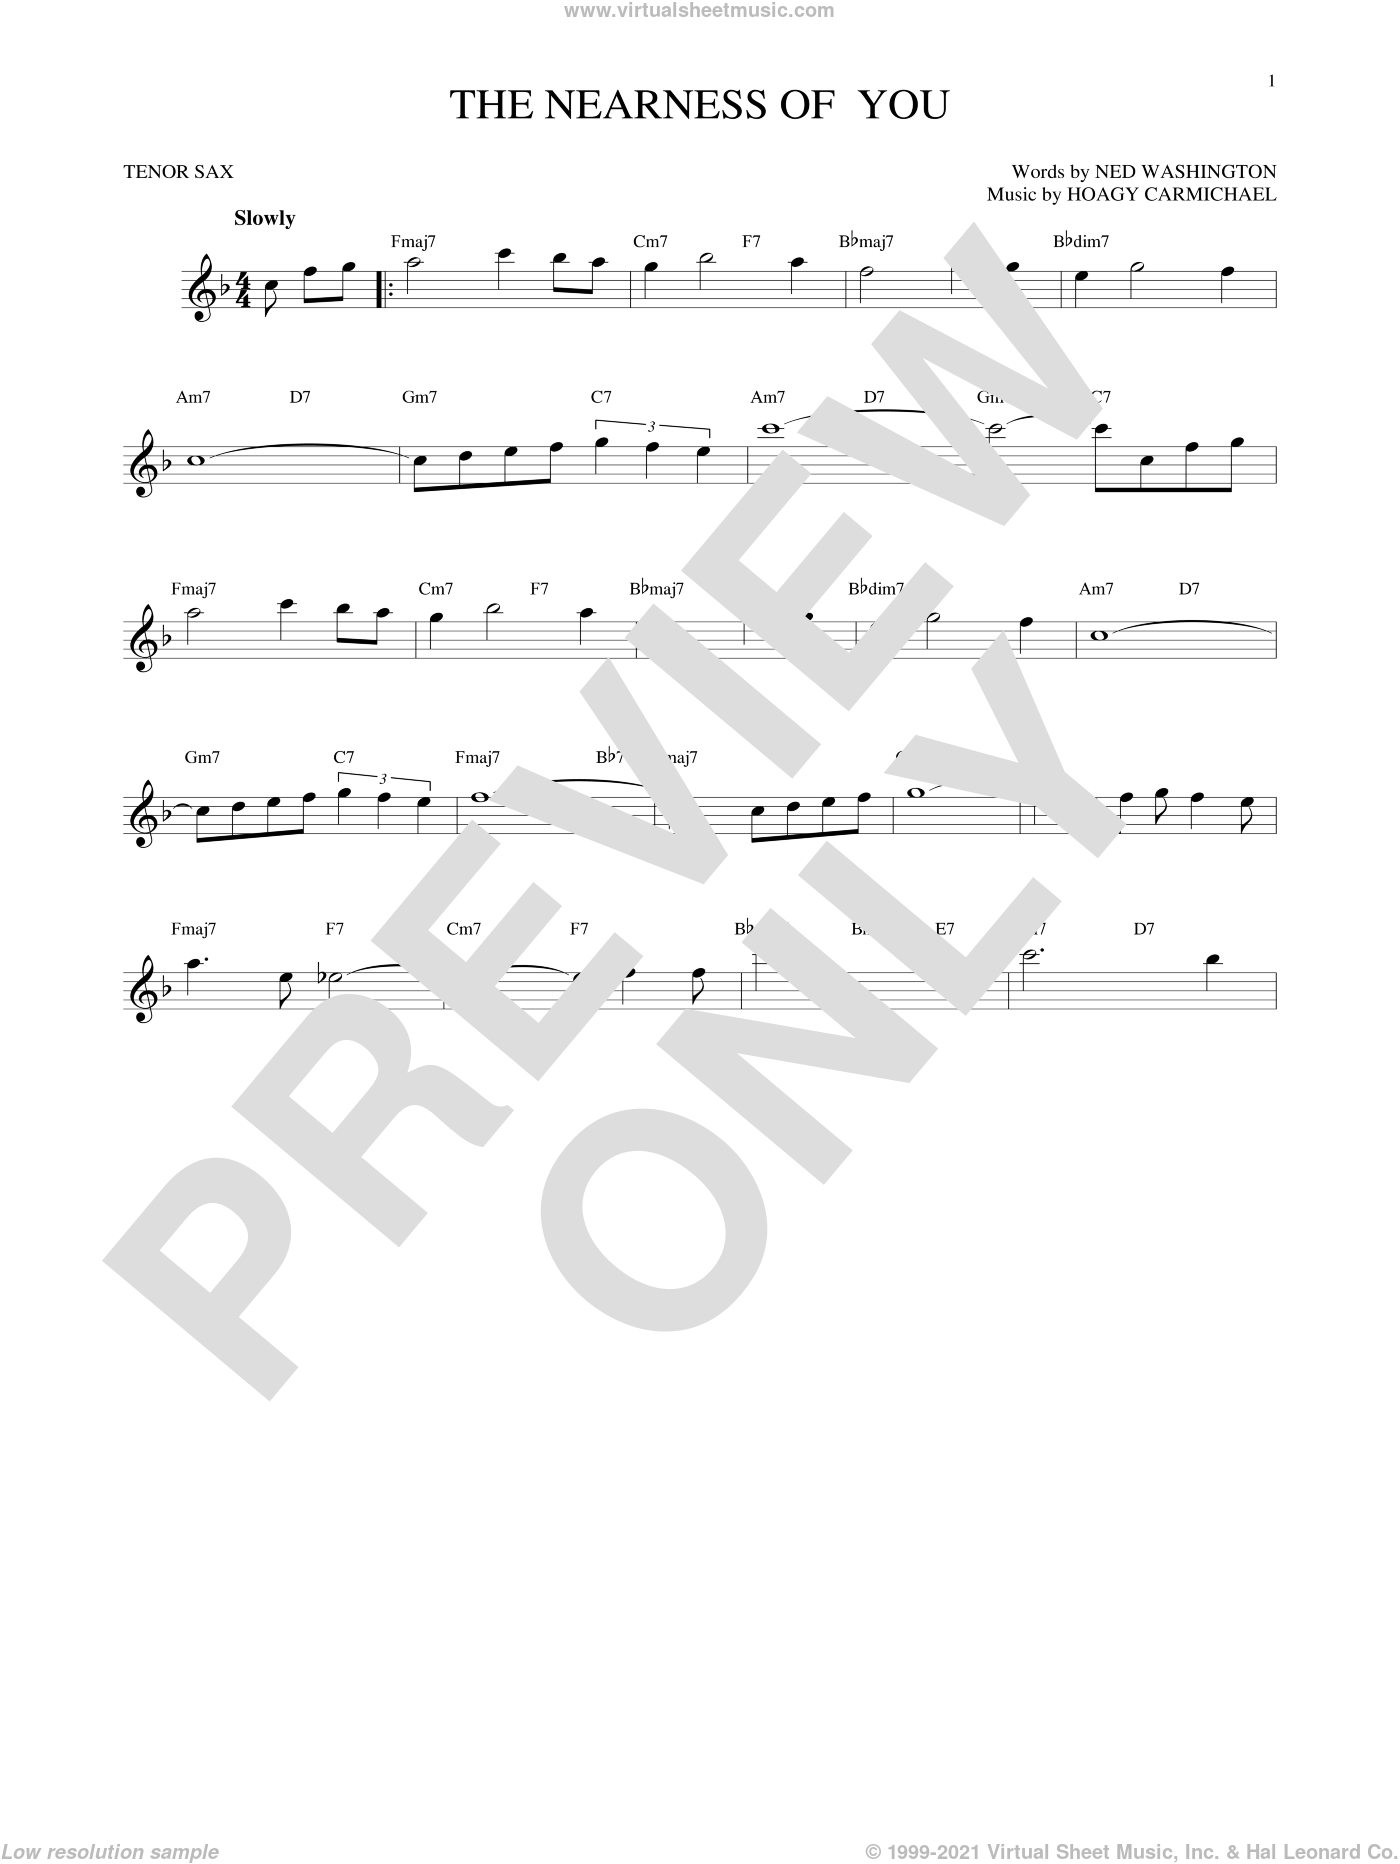 The Nearness Of You sheet music for tenor saxophone solo by Ned Washington, George Shearing and Hoagy Carmichael. Score Image Preview.